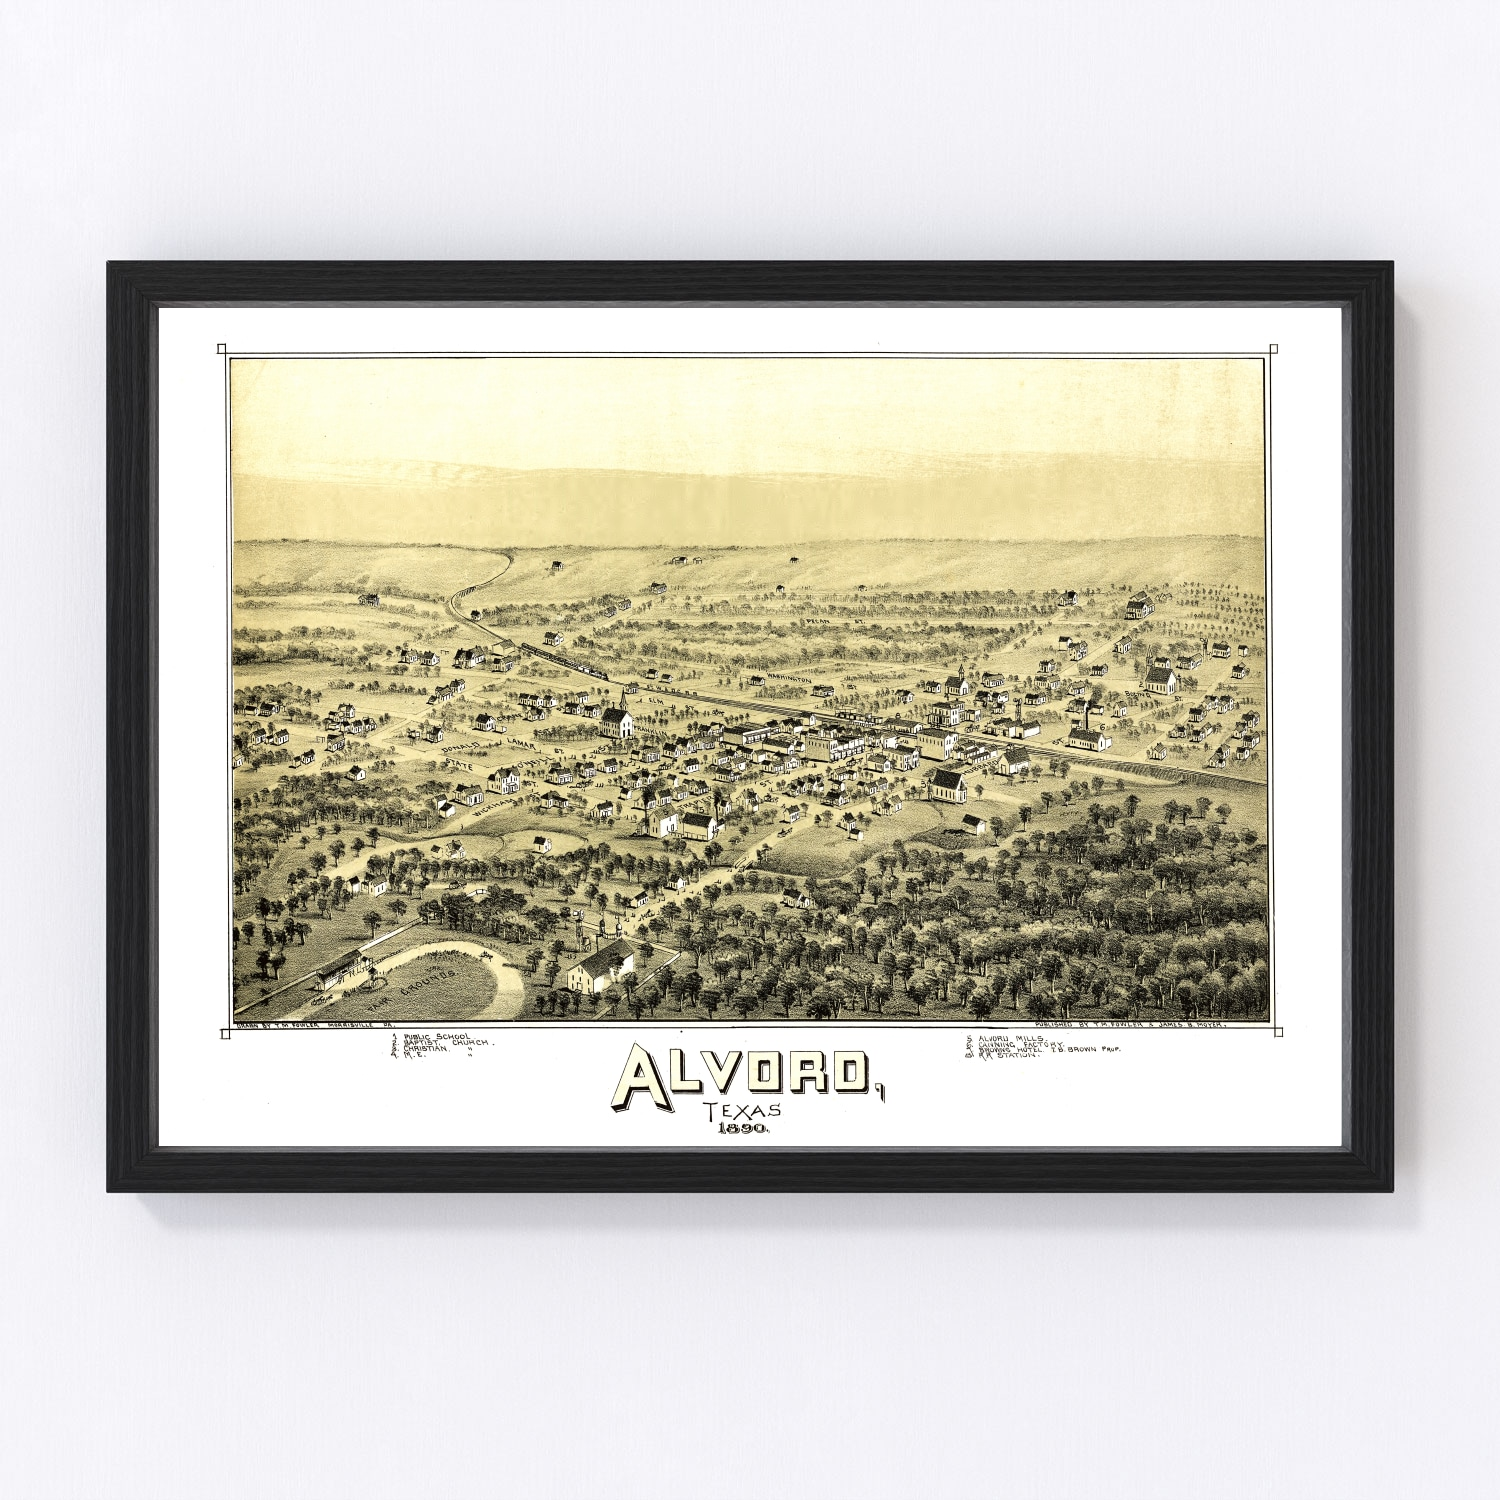 Vintage Map of Alvord, Texas 1890